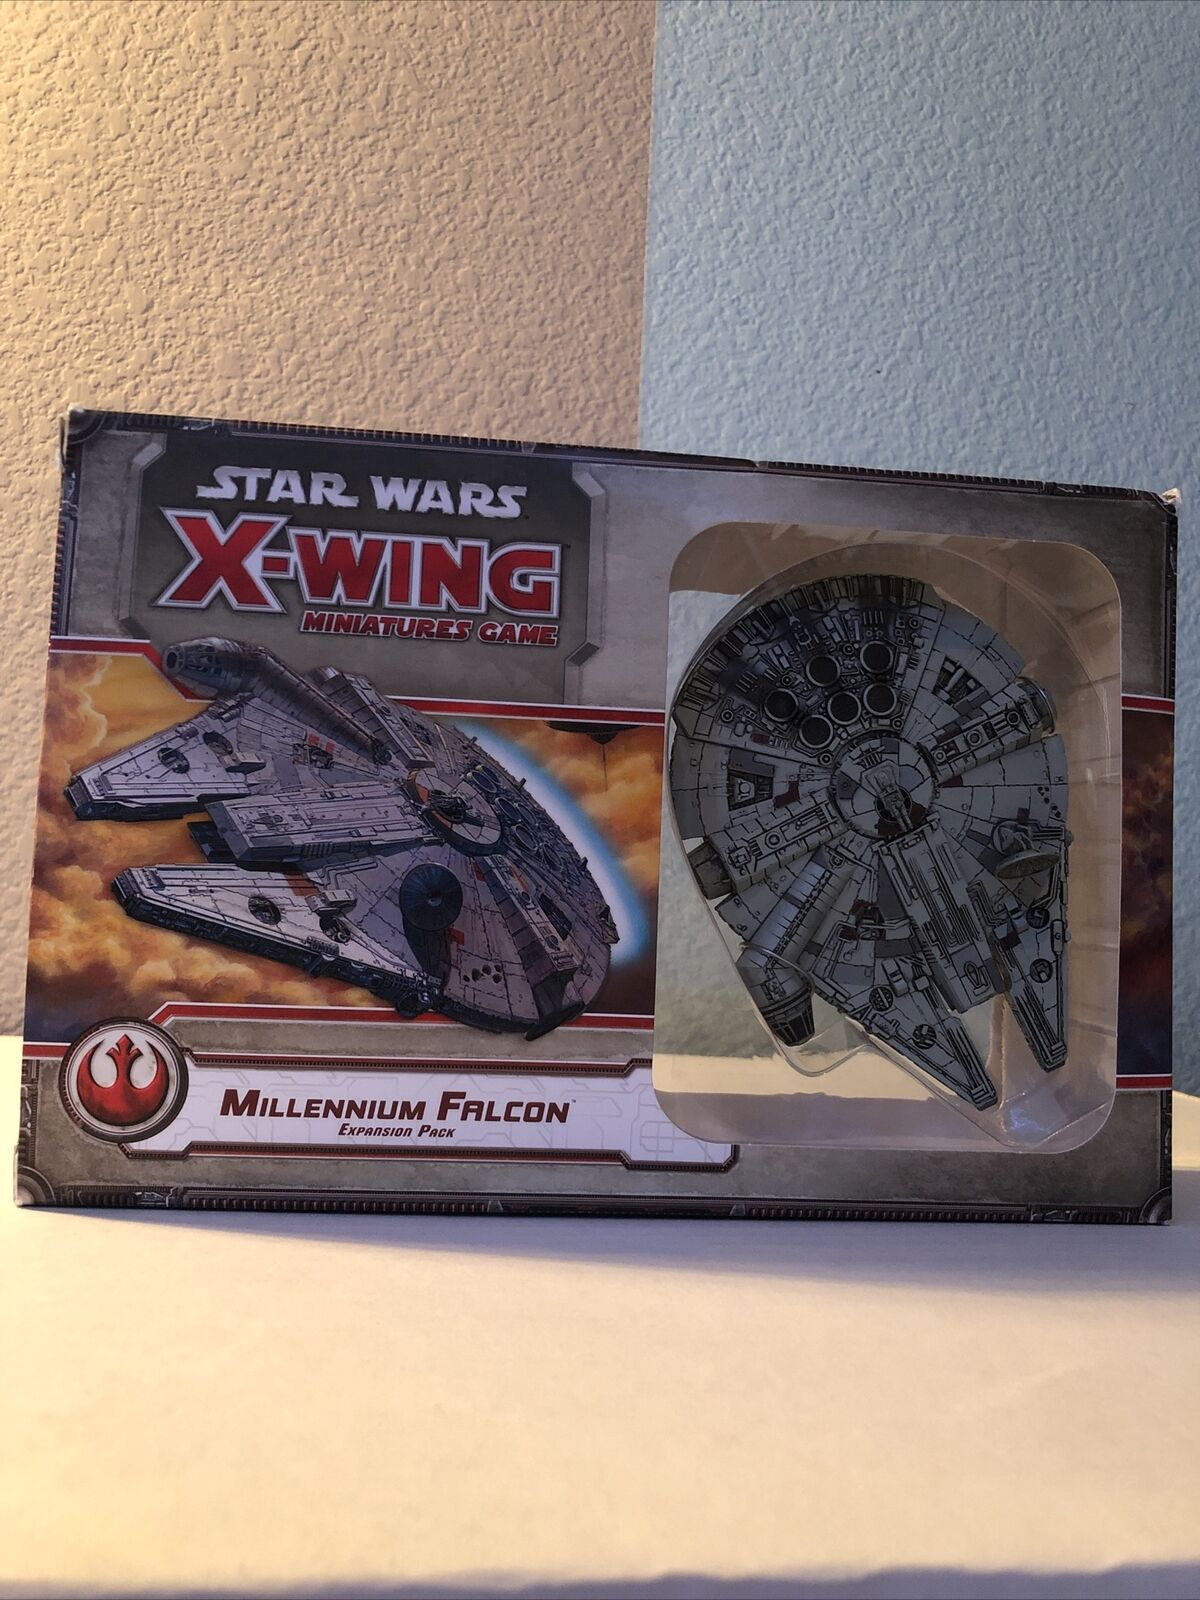 E-069 carry Millennium Falcon /& more! Star Wars X-Wing miniatures game case